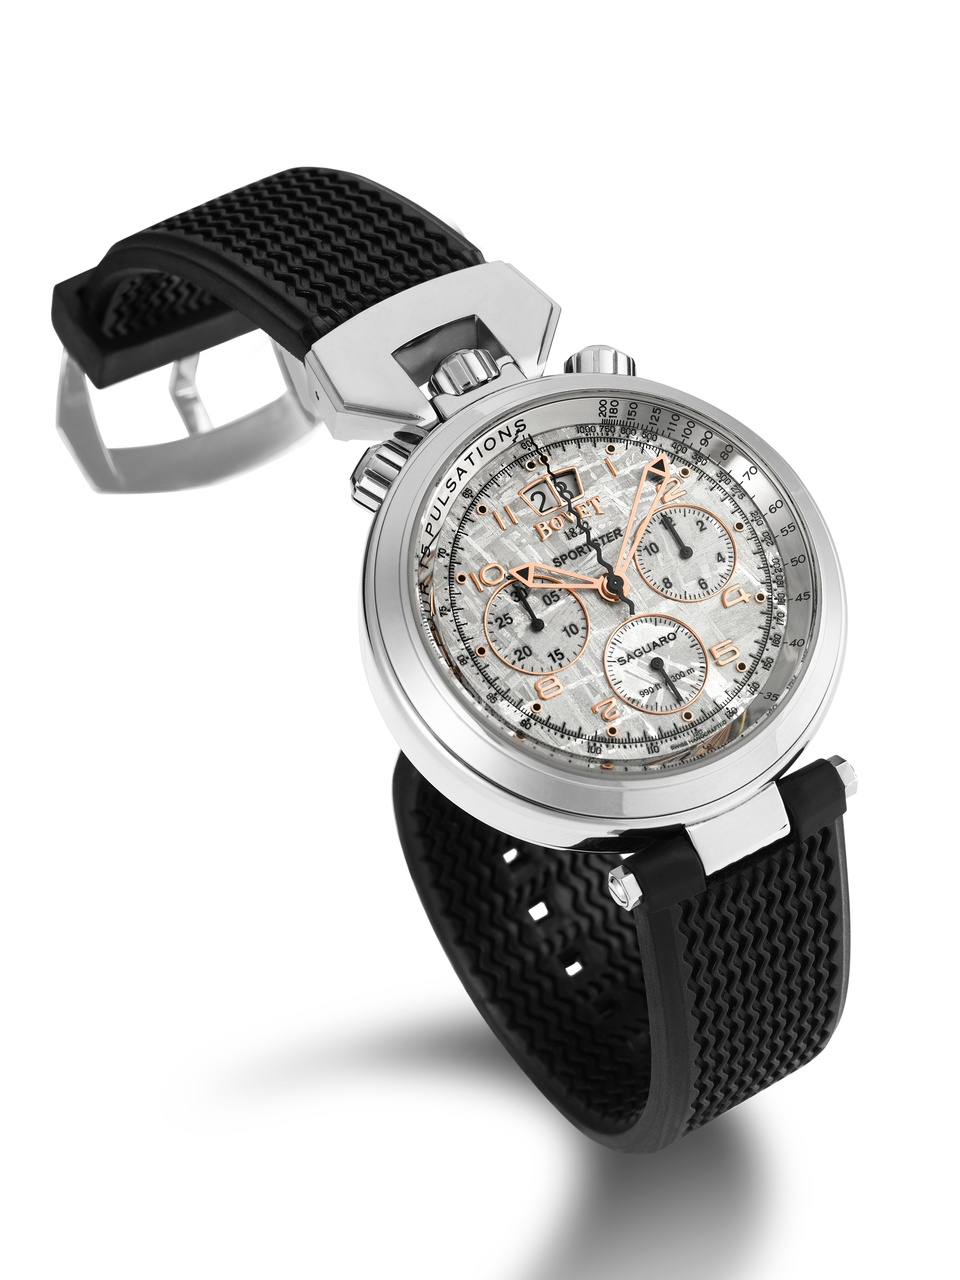 Bovet Watch Sportster Ref. Nr. SP0401-MA Call 312-944-3100 | For Availability